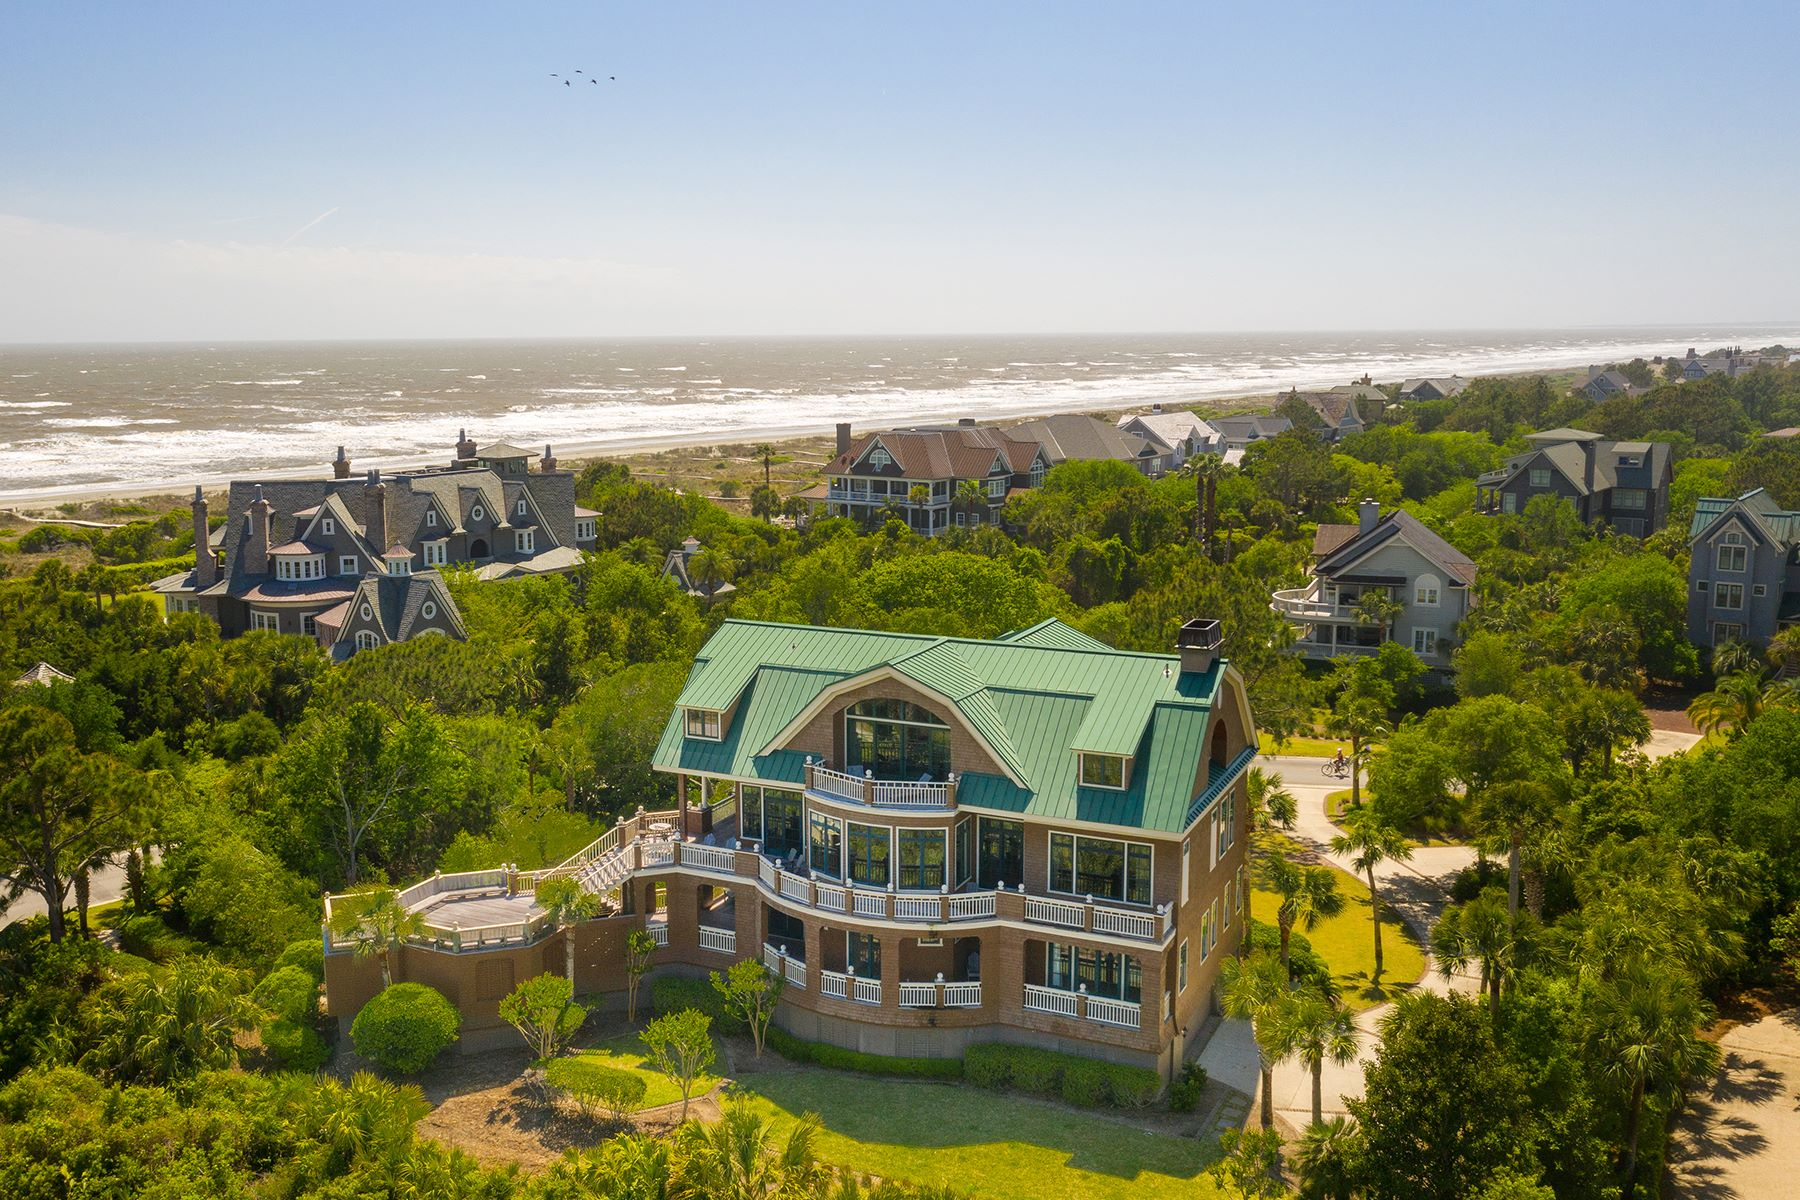 Single Family Homes for Sale at 221 Ocean Marsh Road Kiawah Island, South Carolina 29455 United States